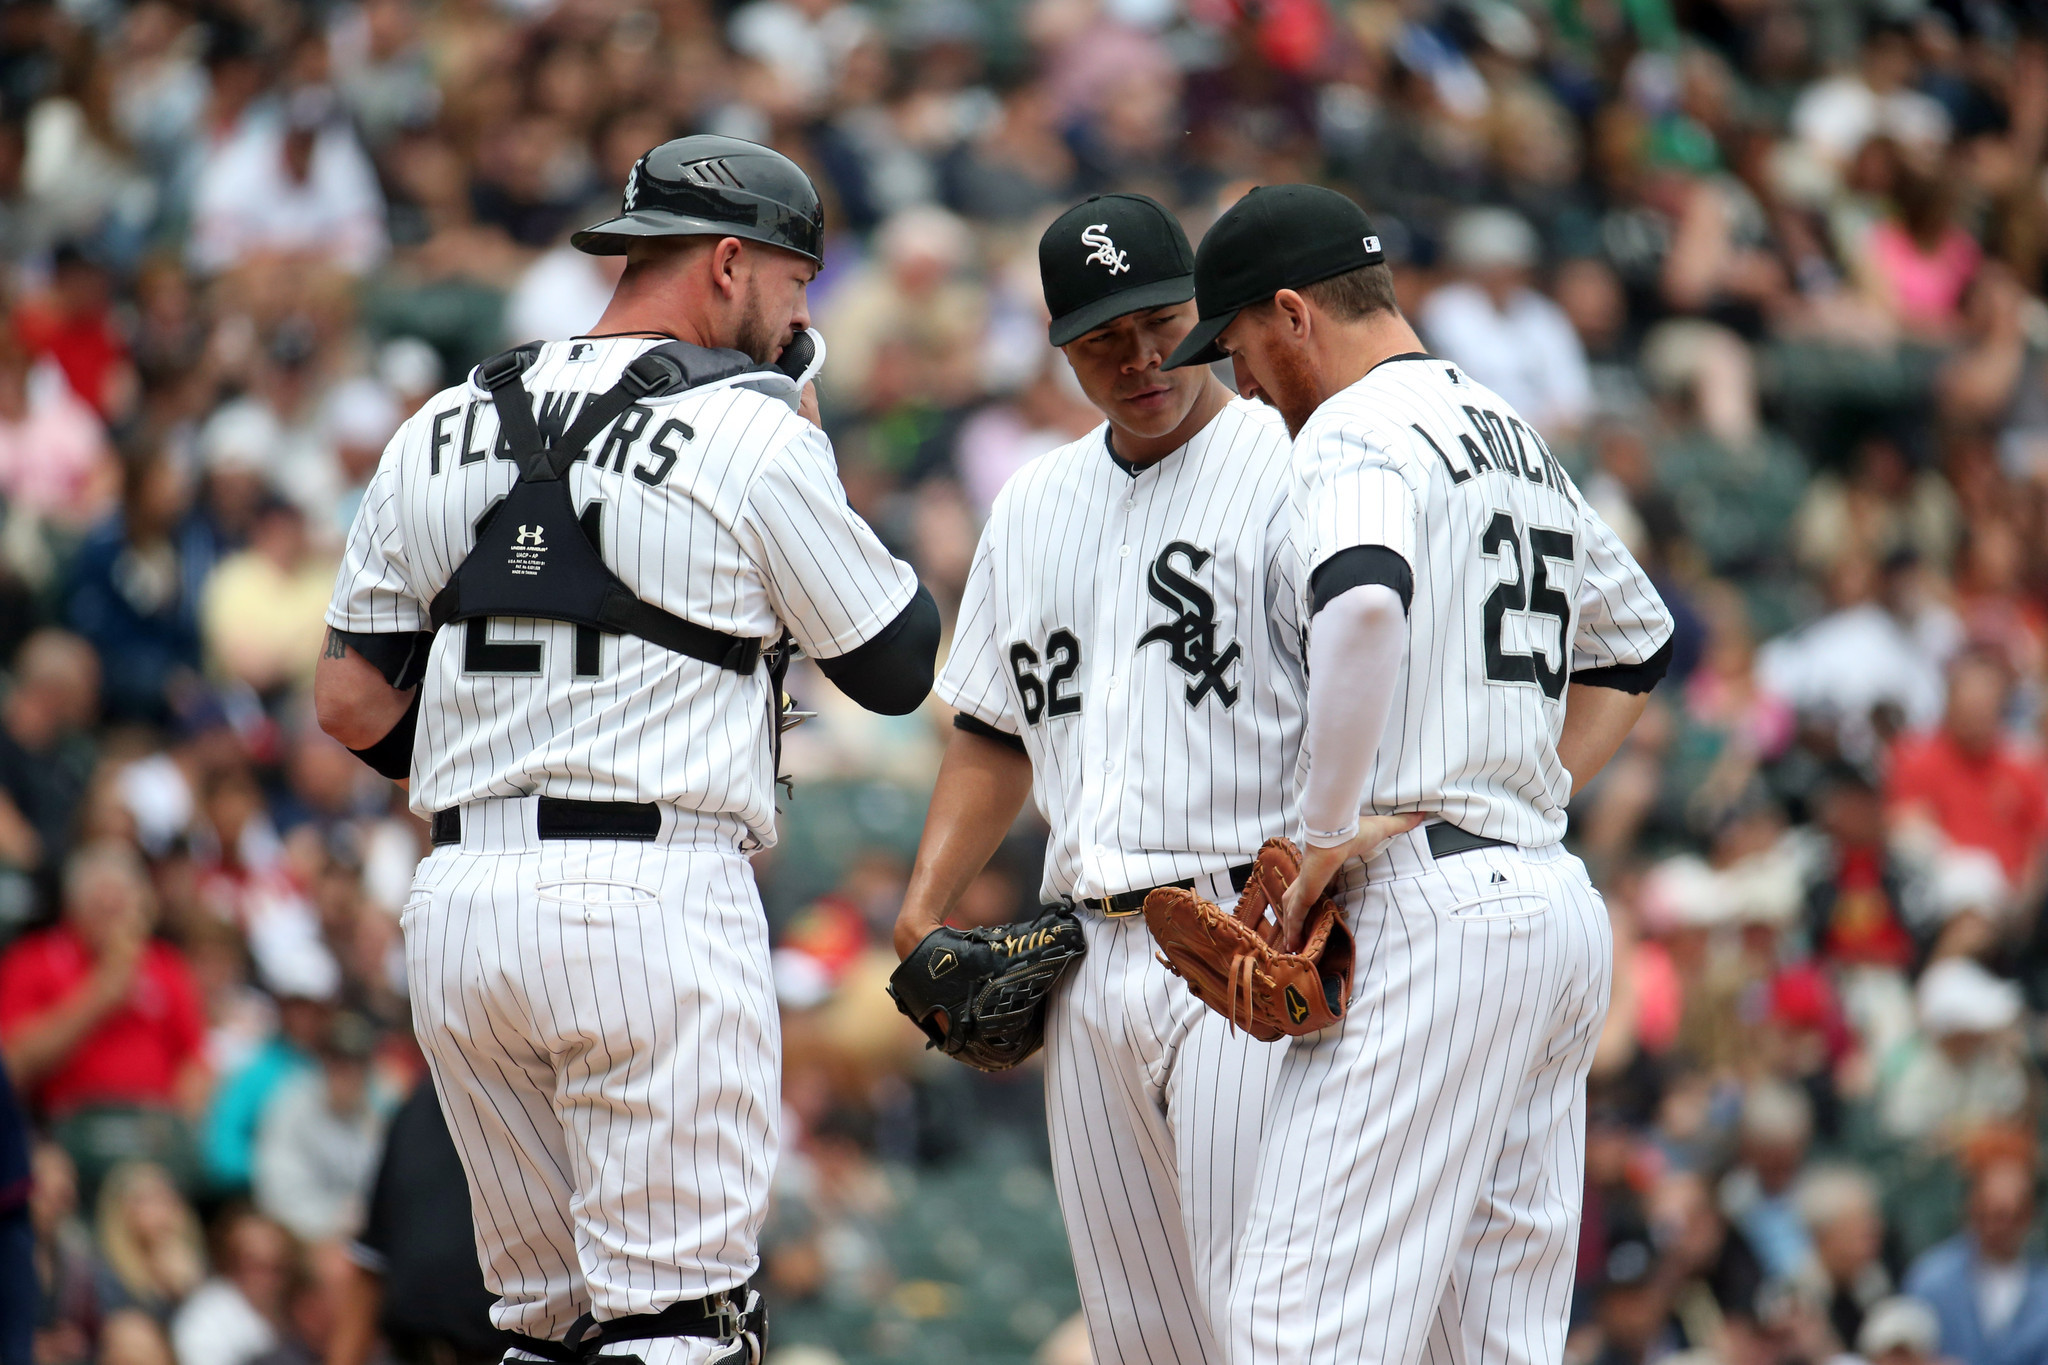 White Sox follow up winning streak with disappointing homestand